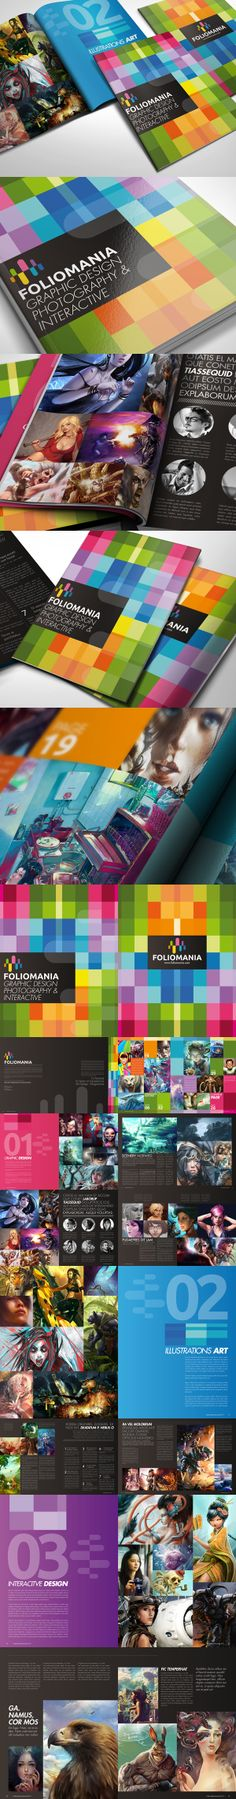 Foliomania the designer portoflio brochure I chose a series of vibrant colors as an approach which symbolise my style of design. A portfolio brochure that will attract the audience even without them flipping through it. I also use a few collage style guide in this brochure by arranging it with unique image placement that create a fresh look and feel.